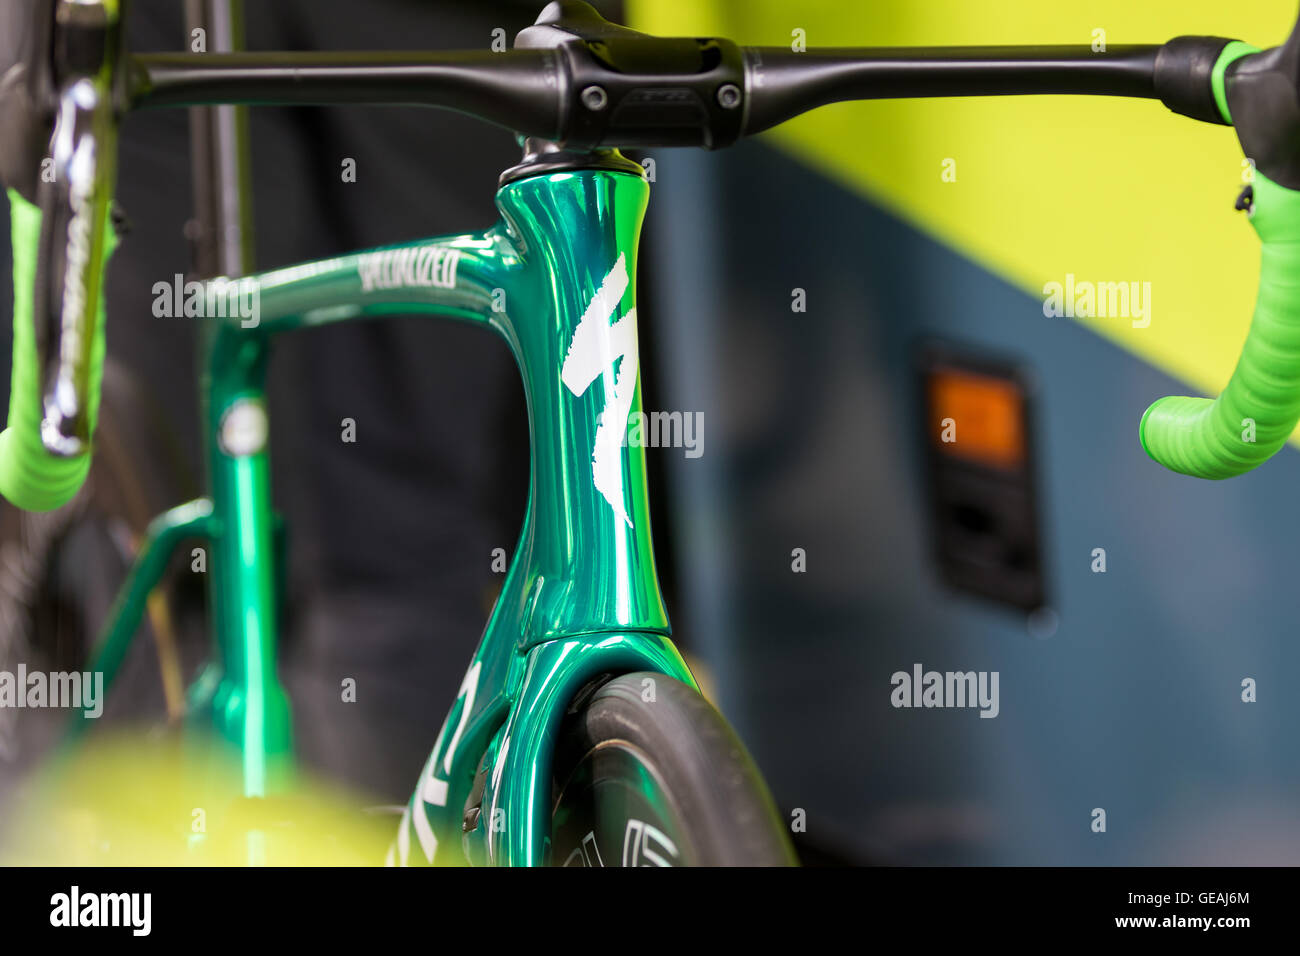 24th July, 2016. Chantilly, FR. The Tinkoff team unveils a custom green chrome painted Specialized Venge to celebrate - Stock Image